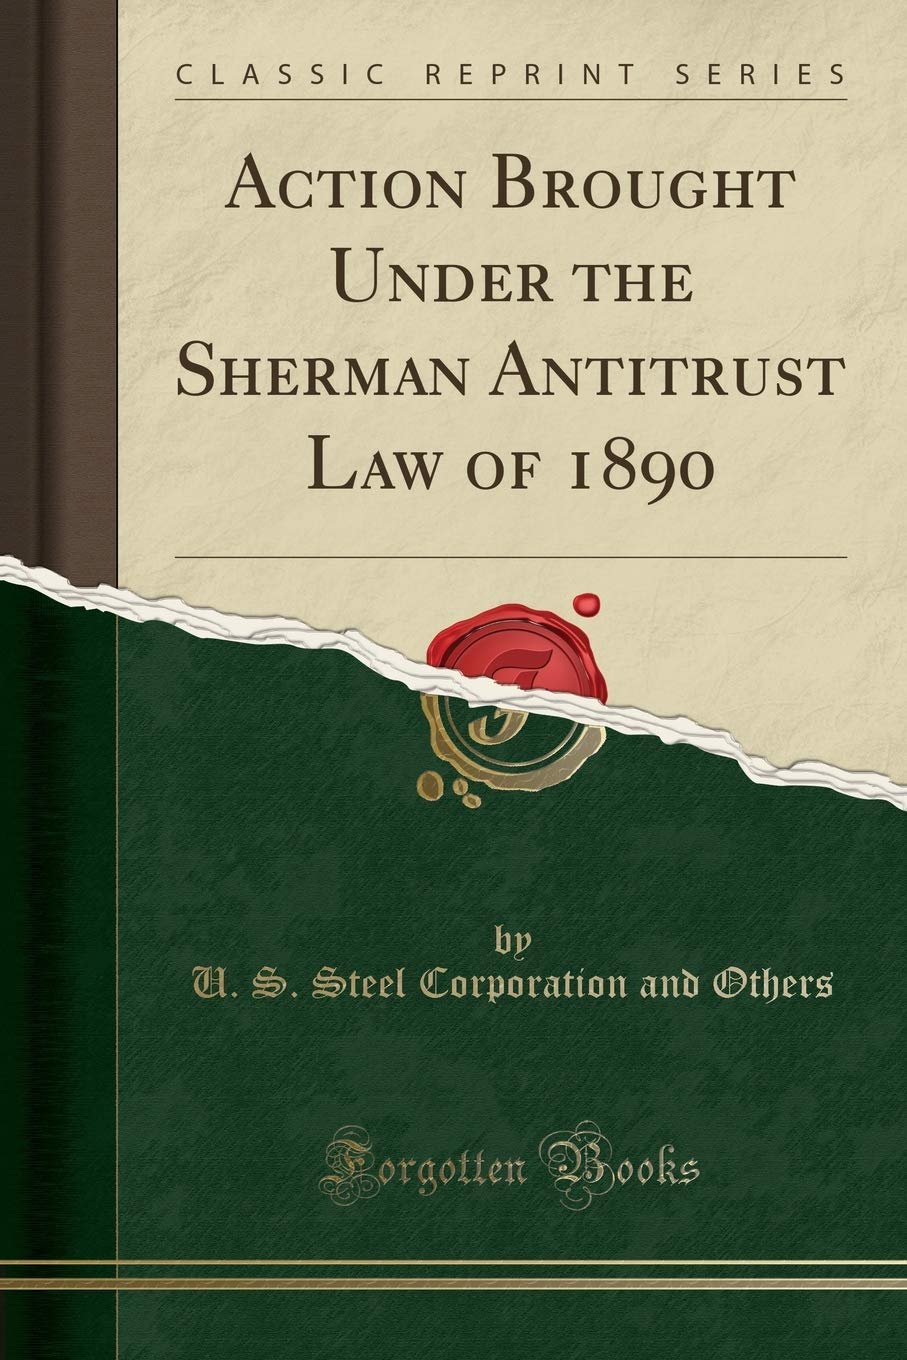 Action Brought Under the Sherman Antitrust Law of 1890 (Classic Reprint) pdf